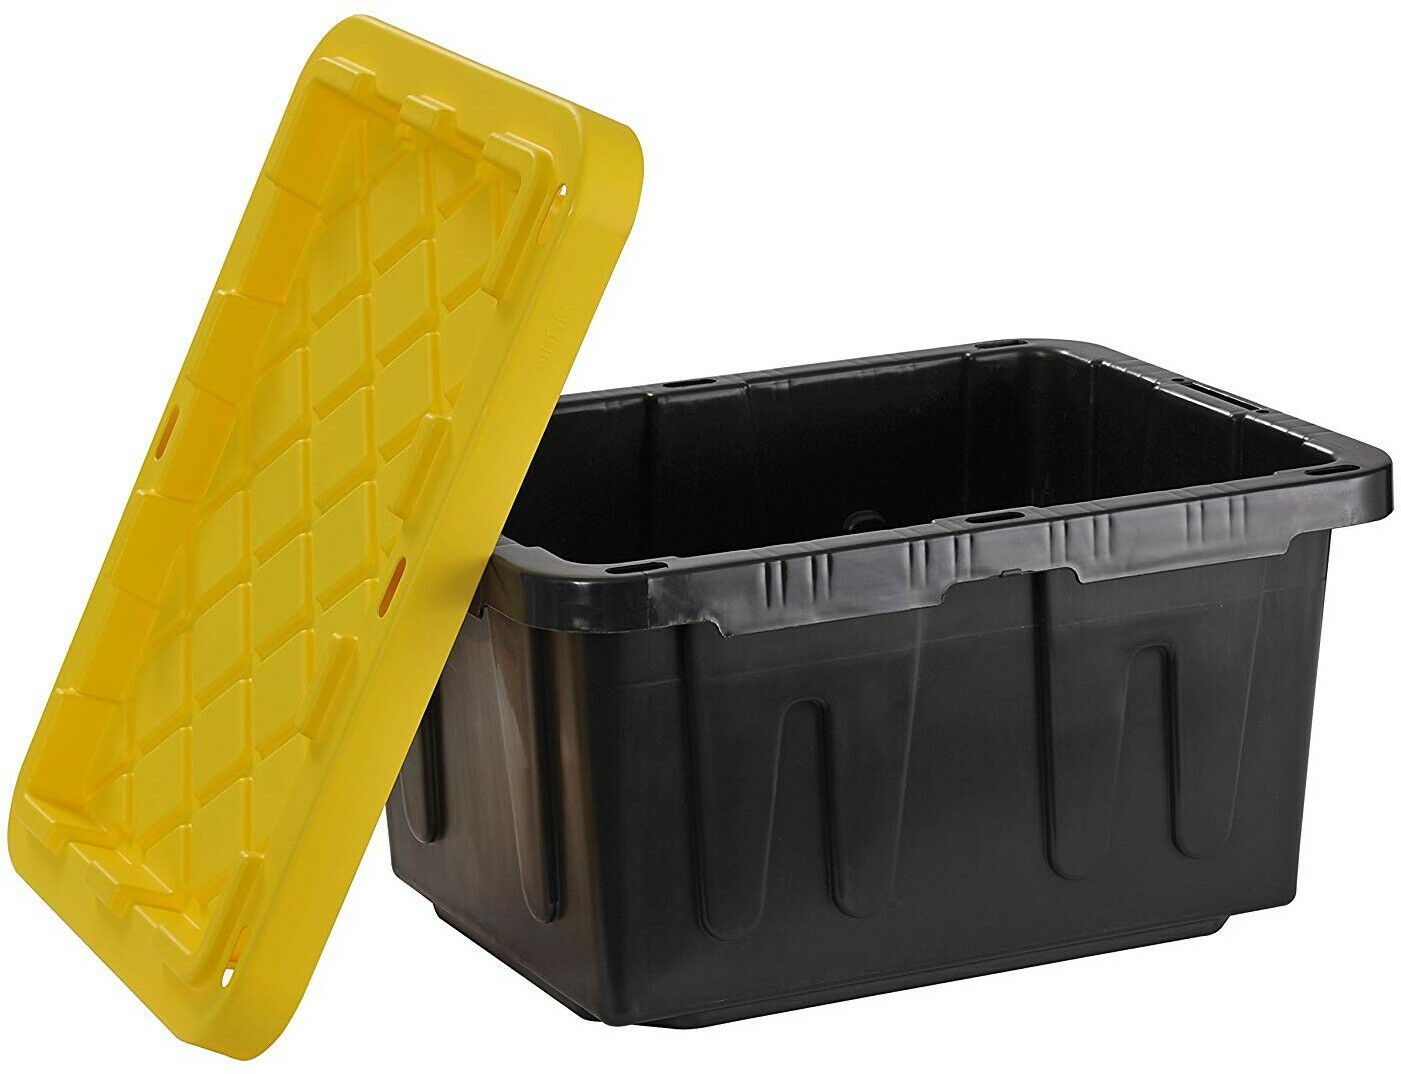 Details About Heavy Duty Storage Container 4pack Lock 5 Gal Gallon